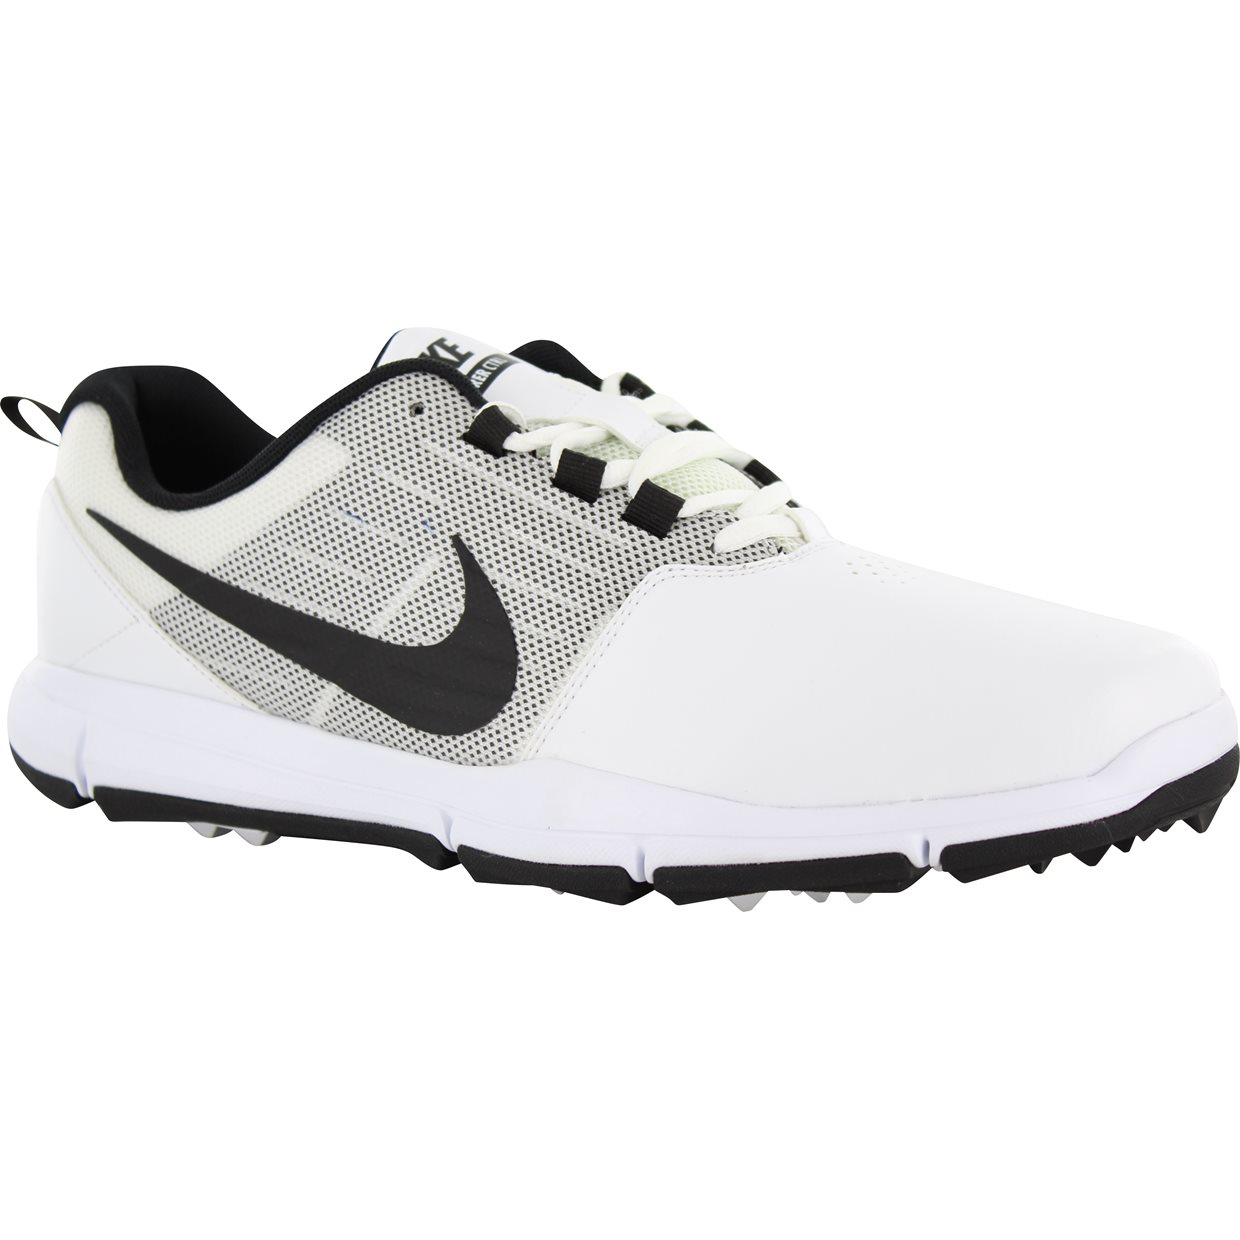 Nike Explorer SL Spikeless Golf Shoes - White Medium Width